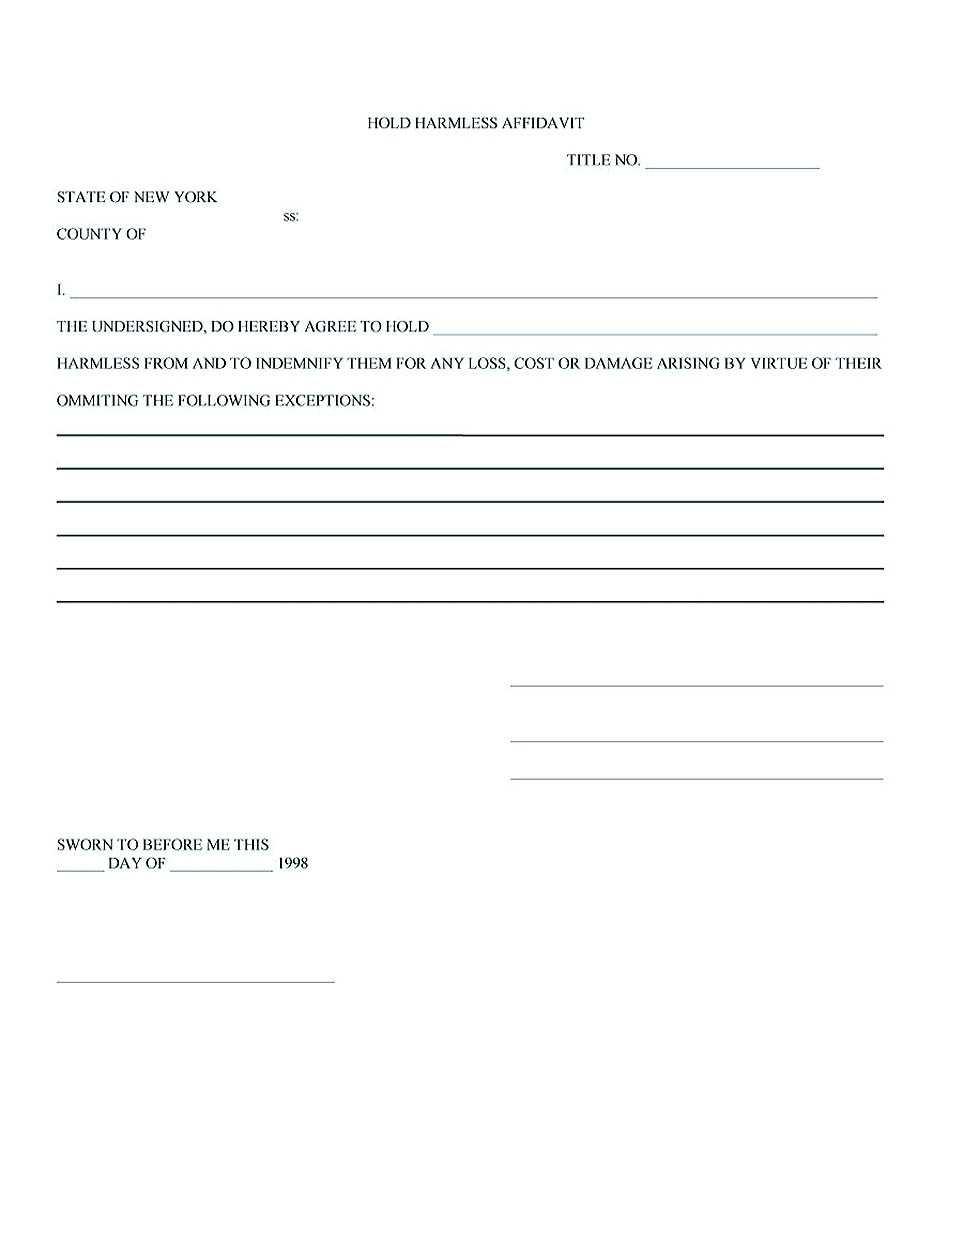 Making Hold Harmless Agreement Template For Different Purposes